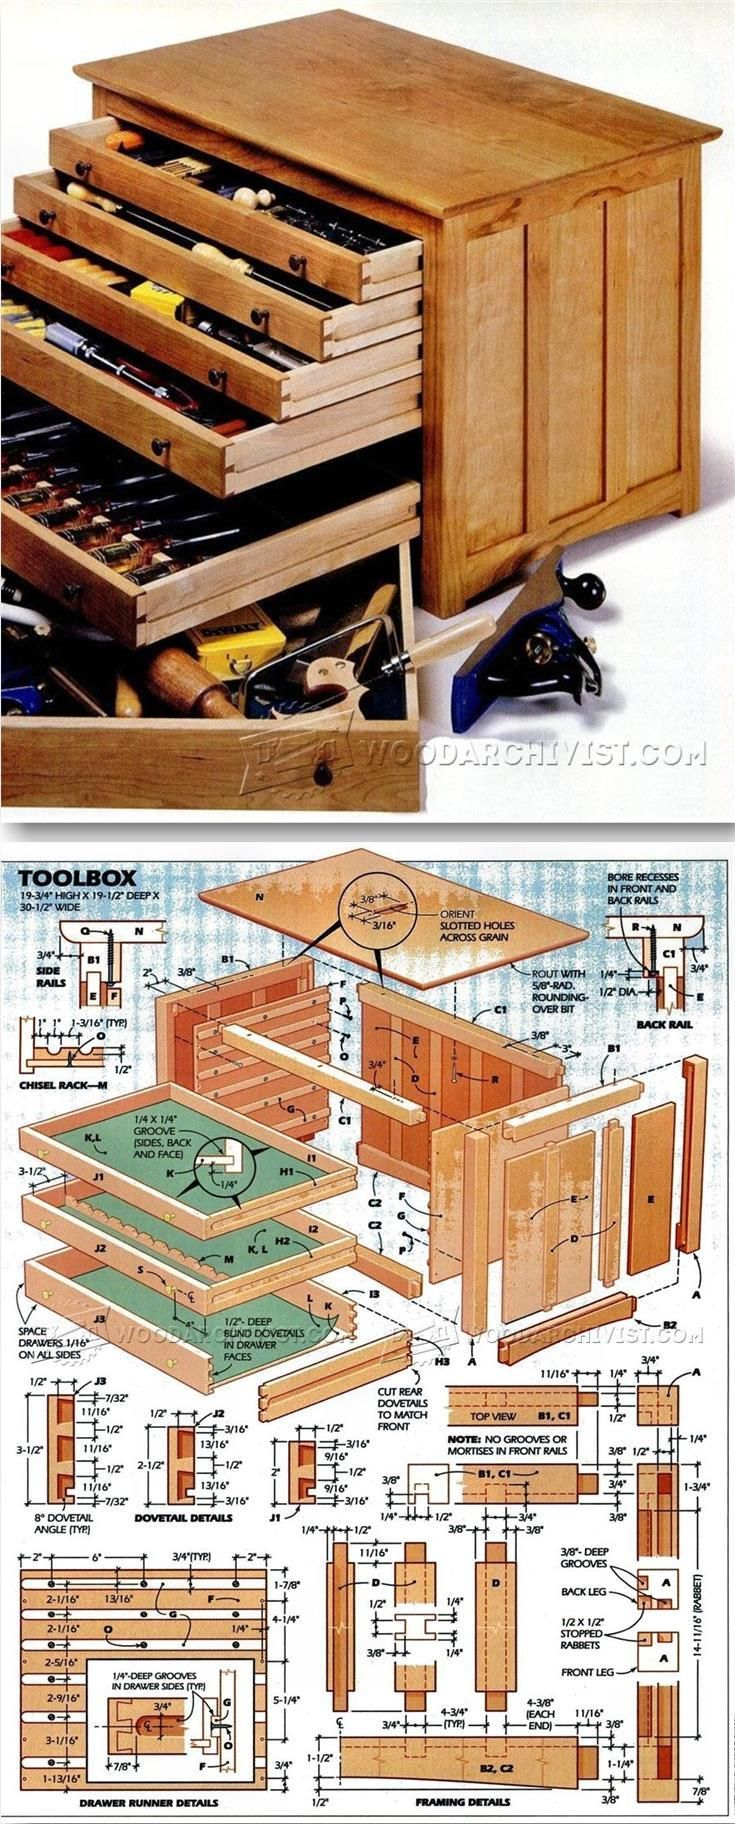 Toolbox Plans - Workshop Solutions Projects, Tips and Tricks ...